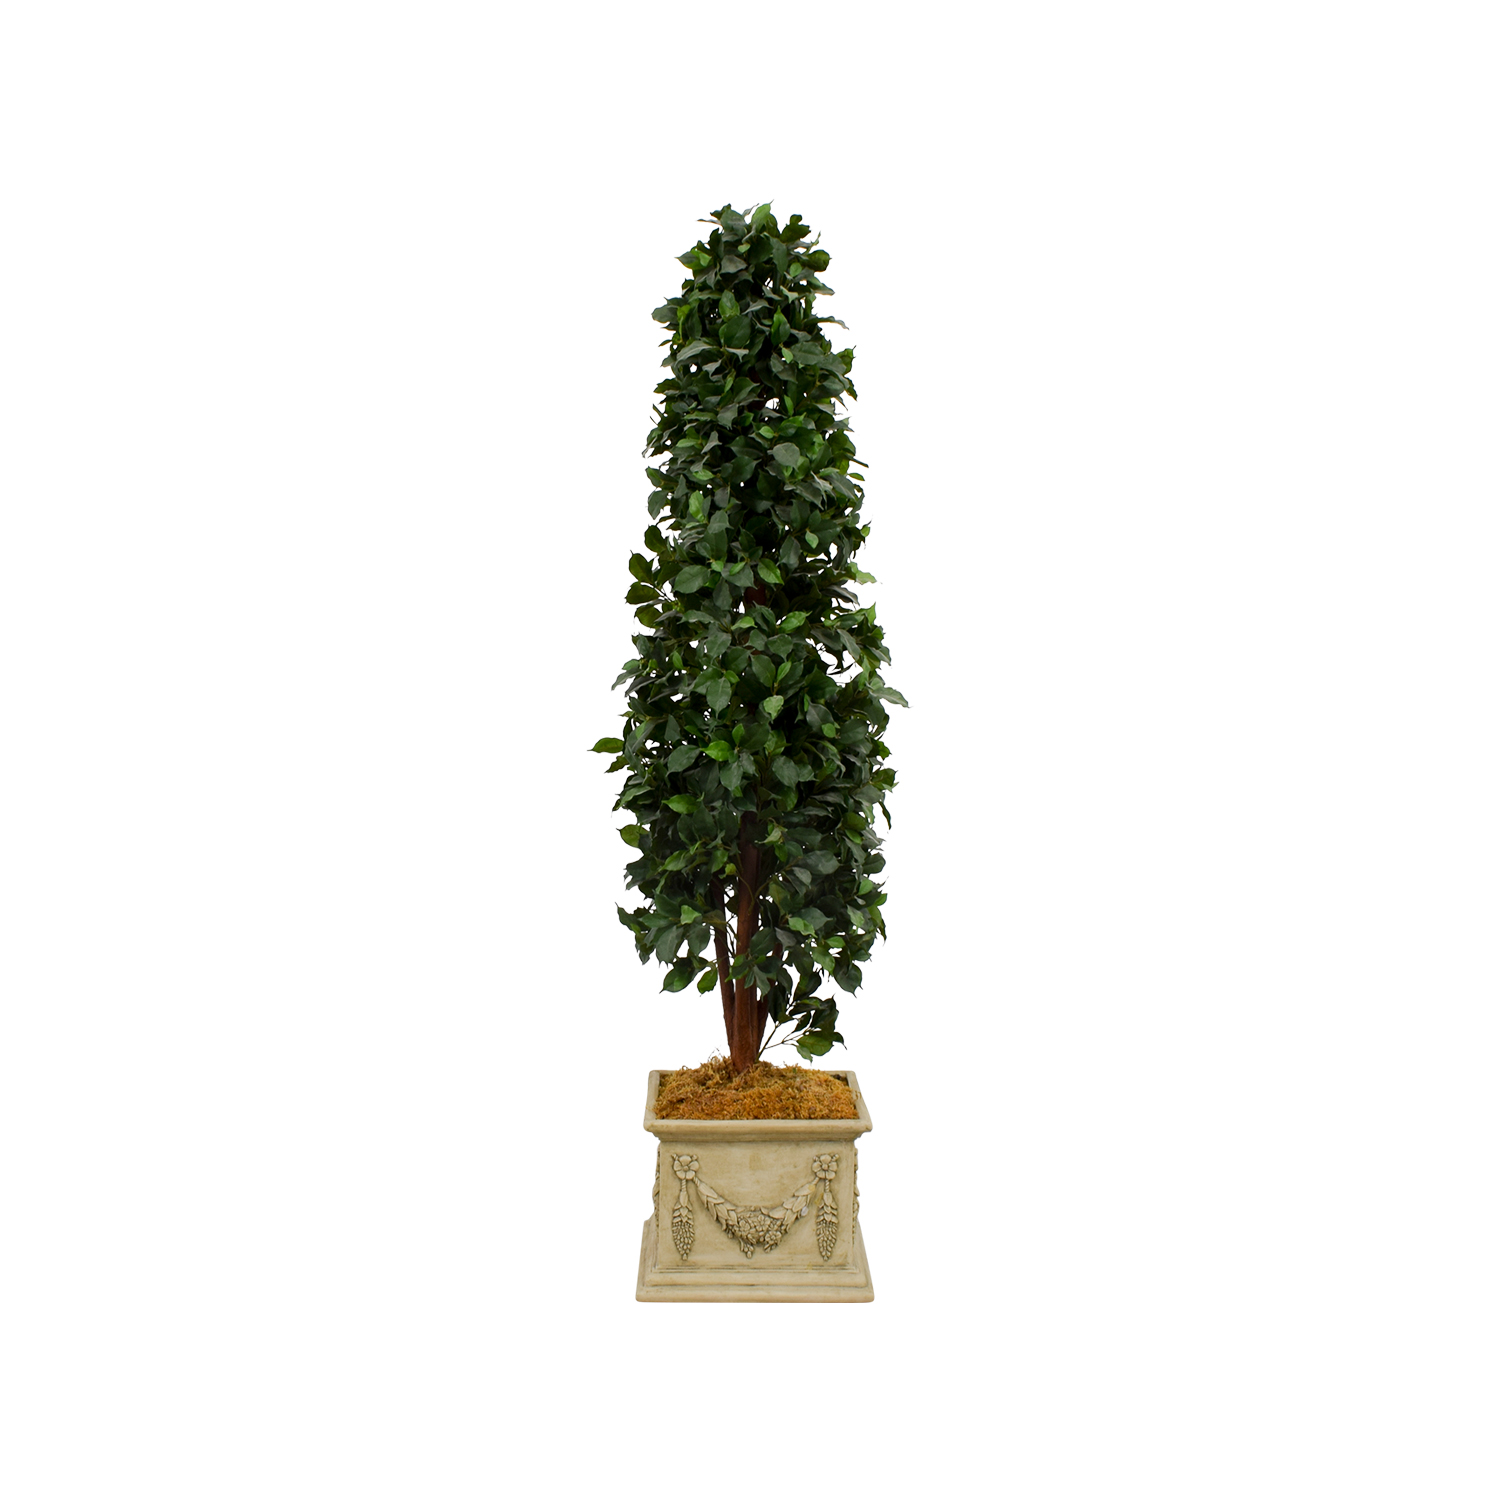 Ballard Designs Ballard Designs Decorative Green Ivy in Urn Decorative Accents